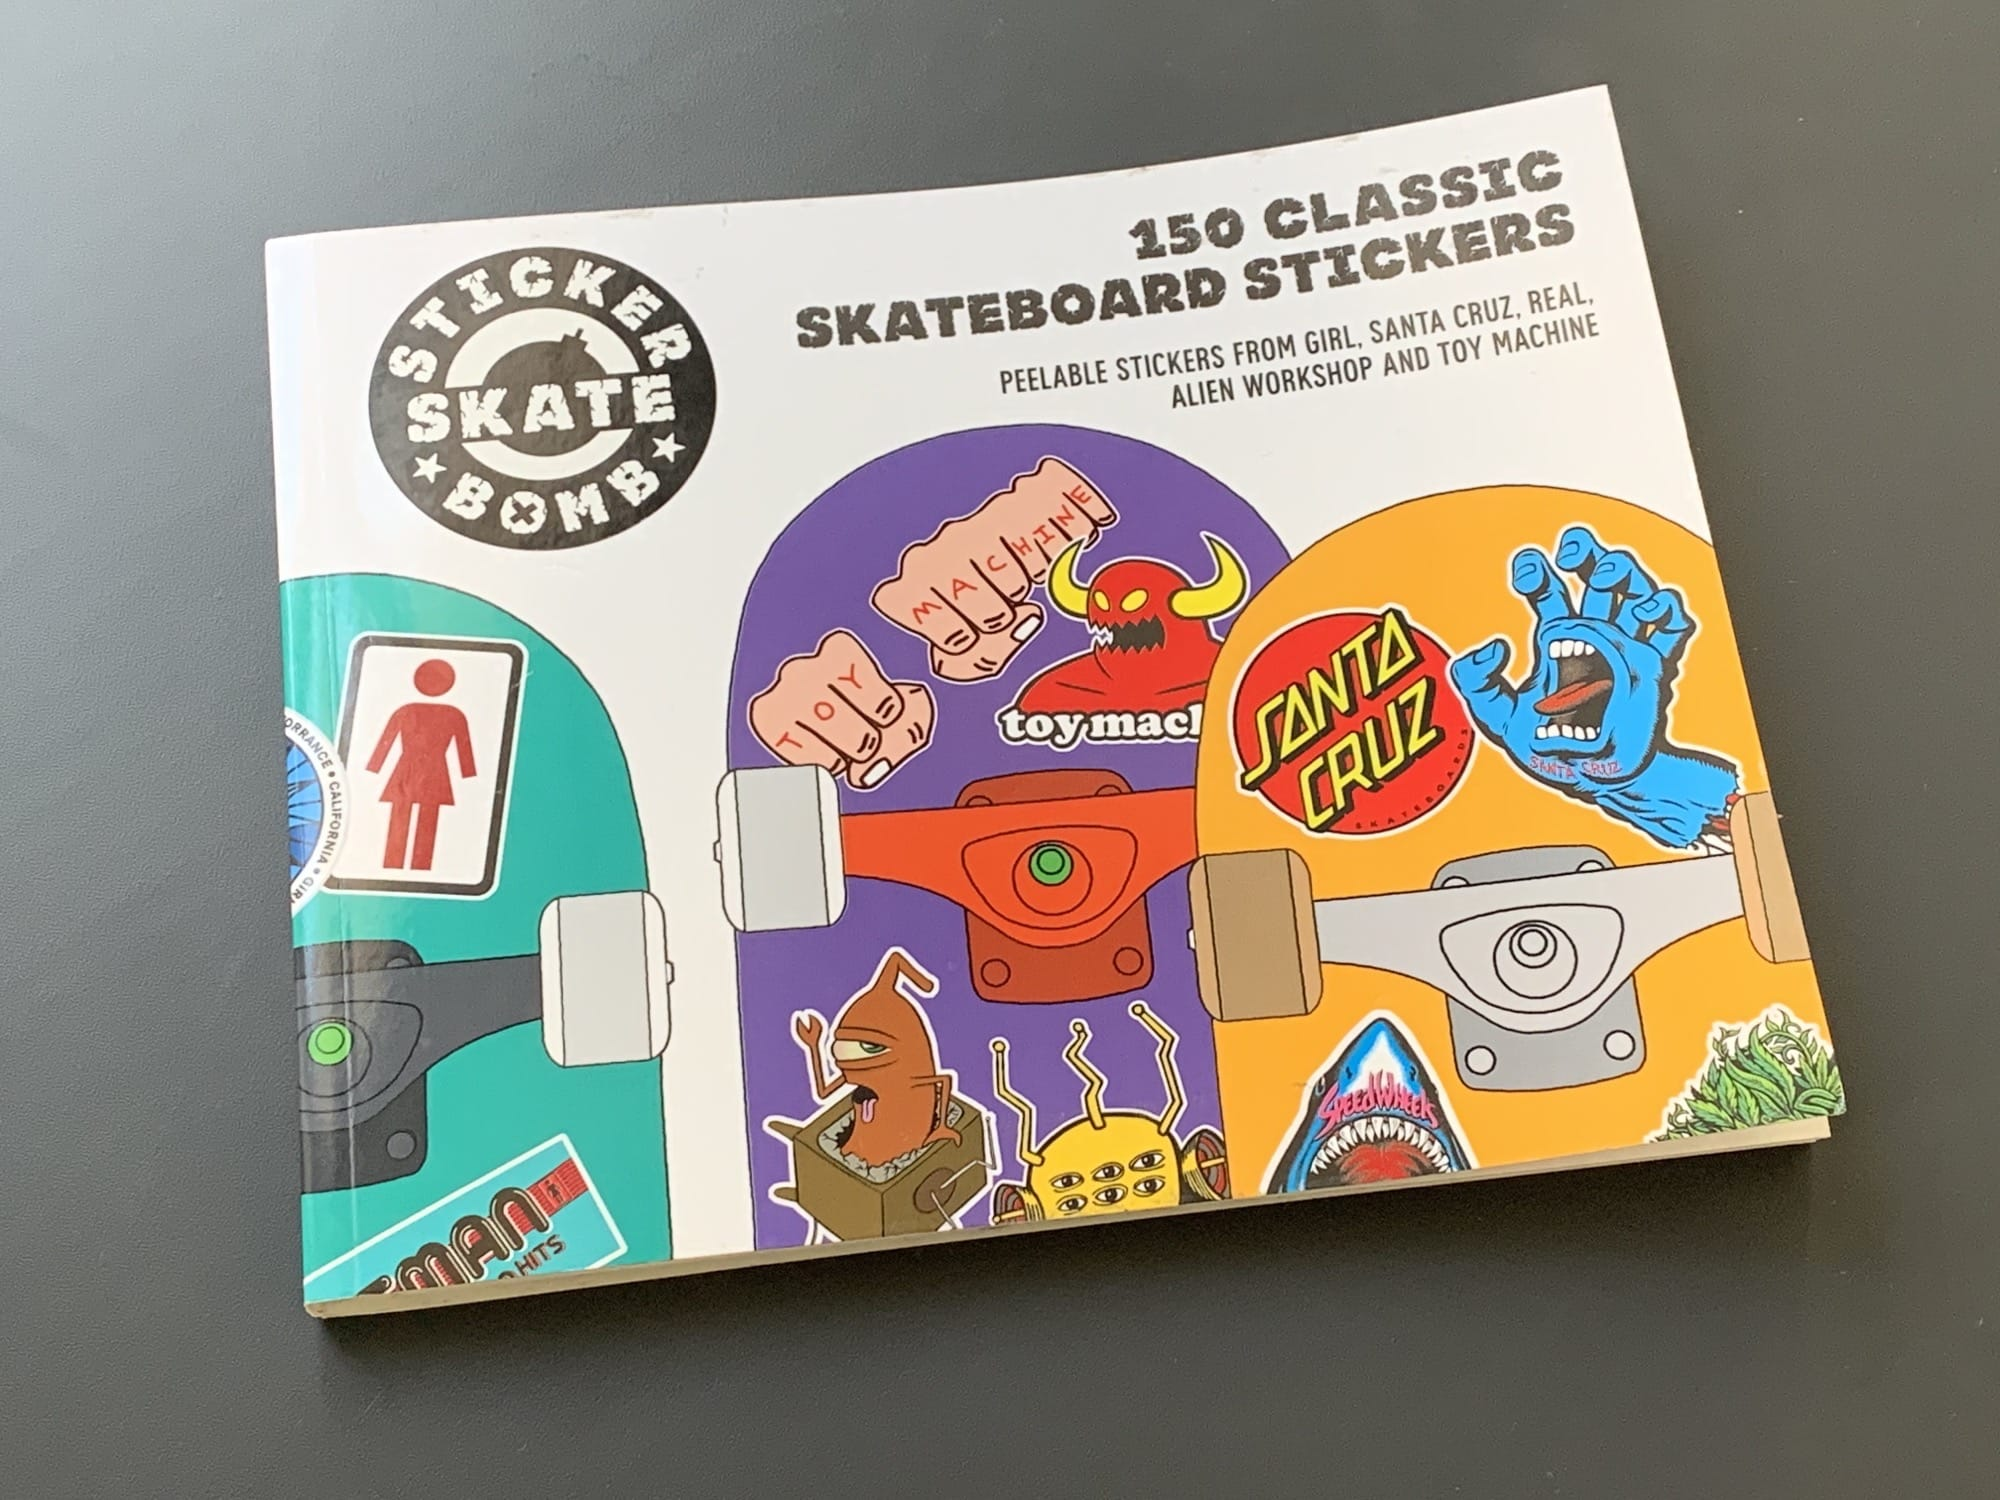 The book 150 Classic Skateboard Stickers is worth every penny if you're looking for MacBook stickers.